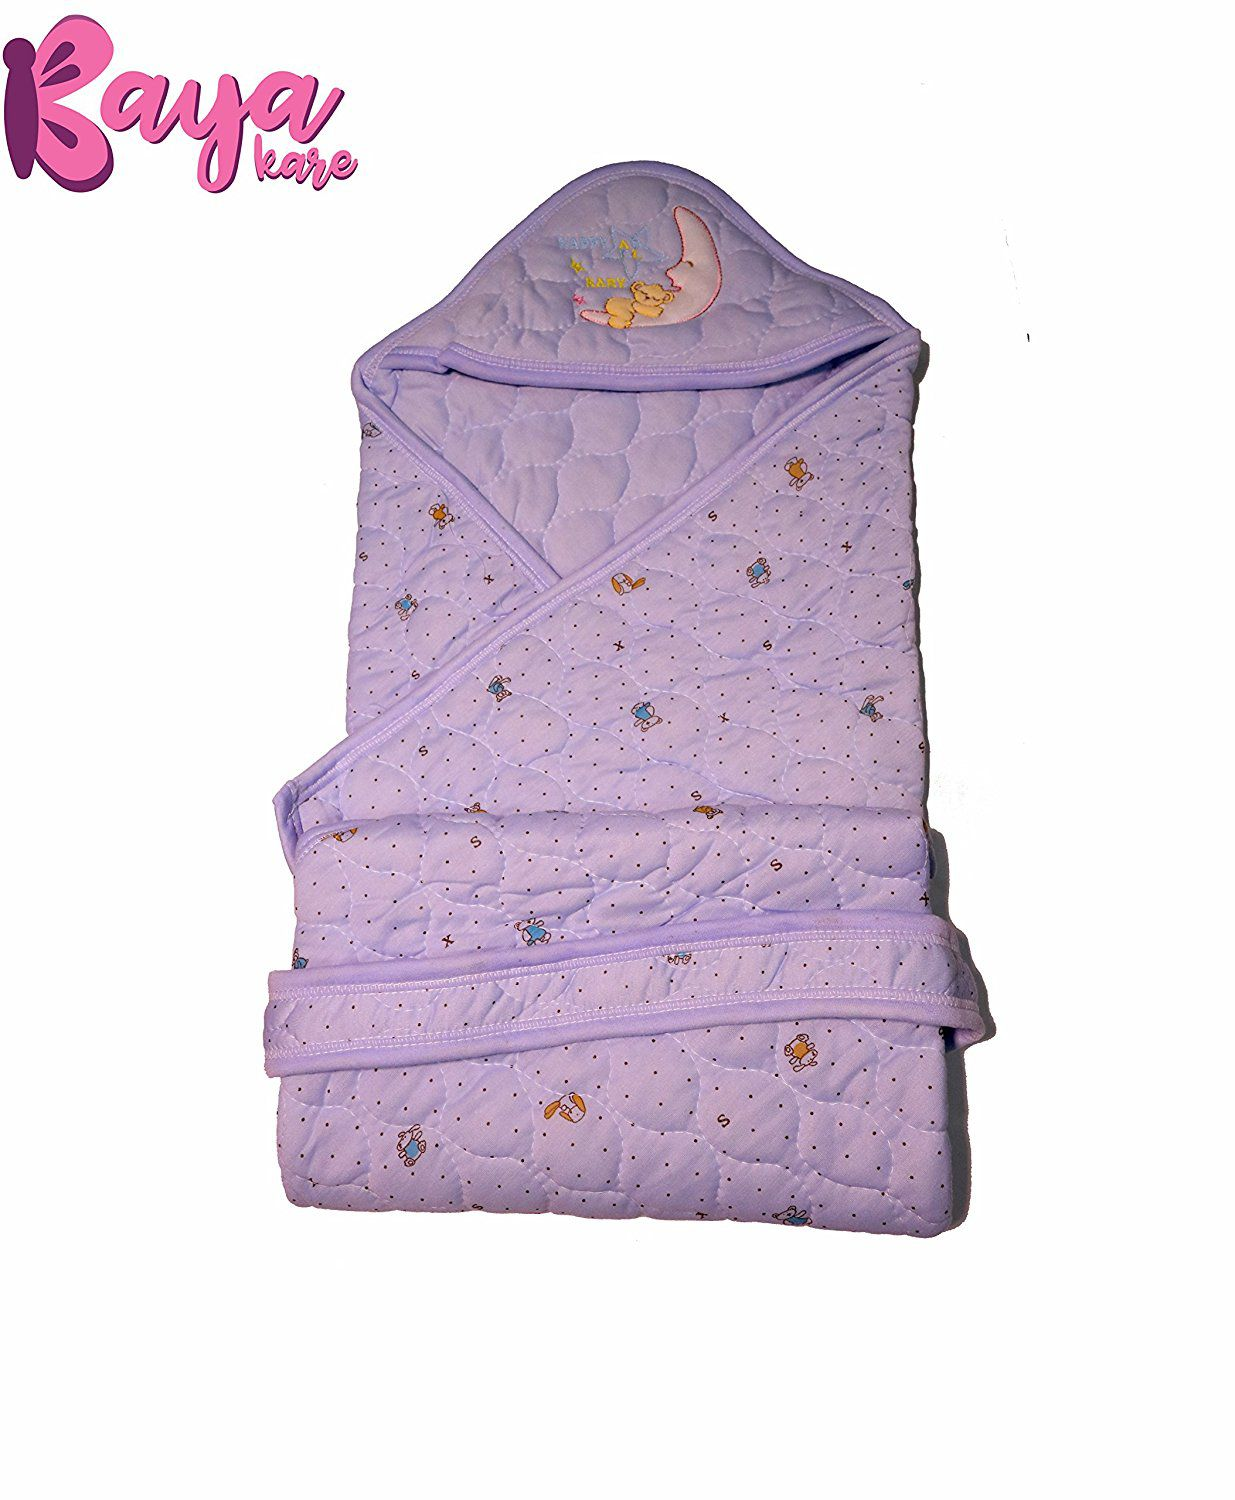 Kayakare Purple Cotton Baby Wrap cum blanket ( 43 cm × 15 cm - 1 pcs)